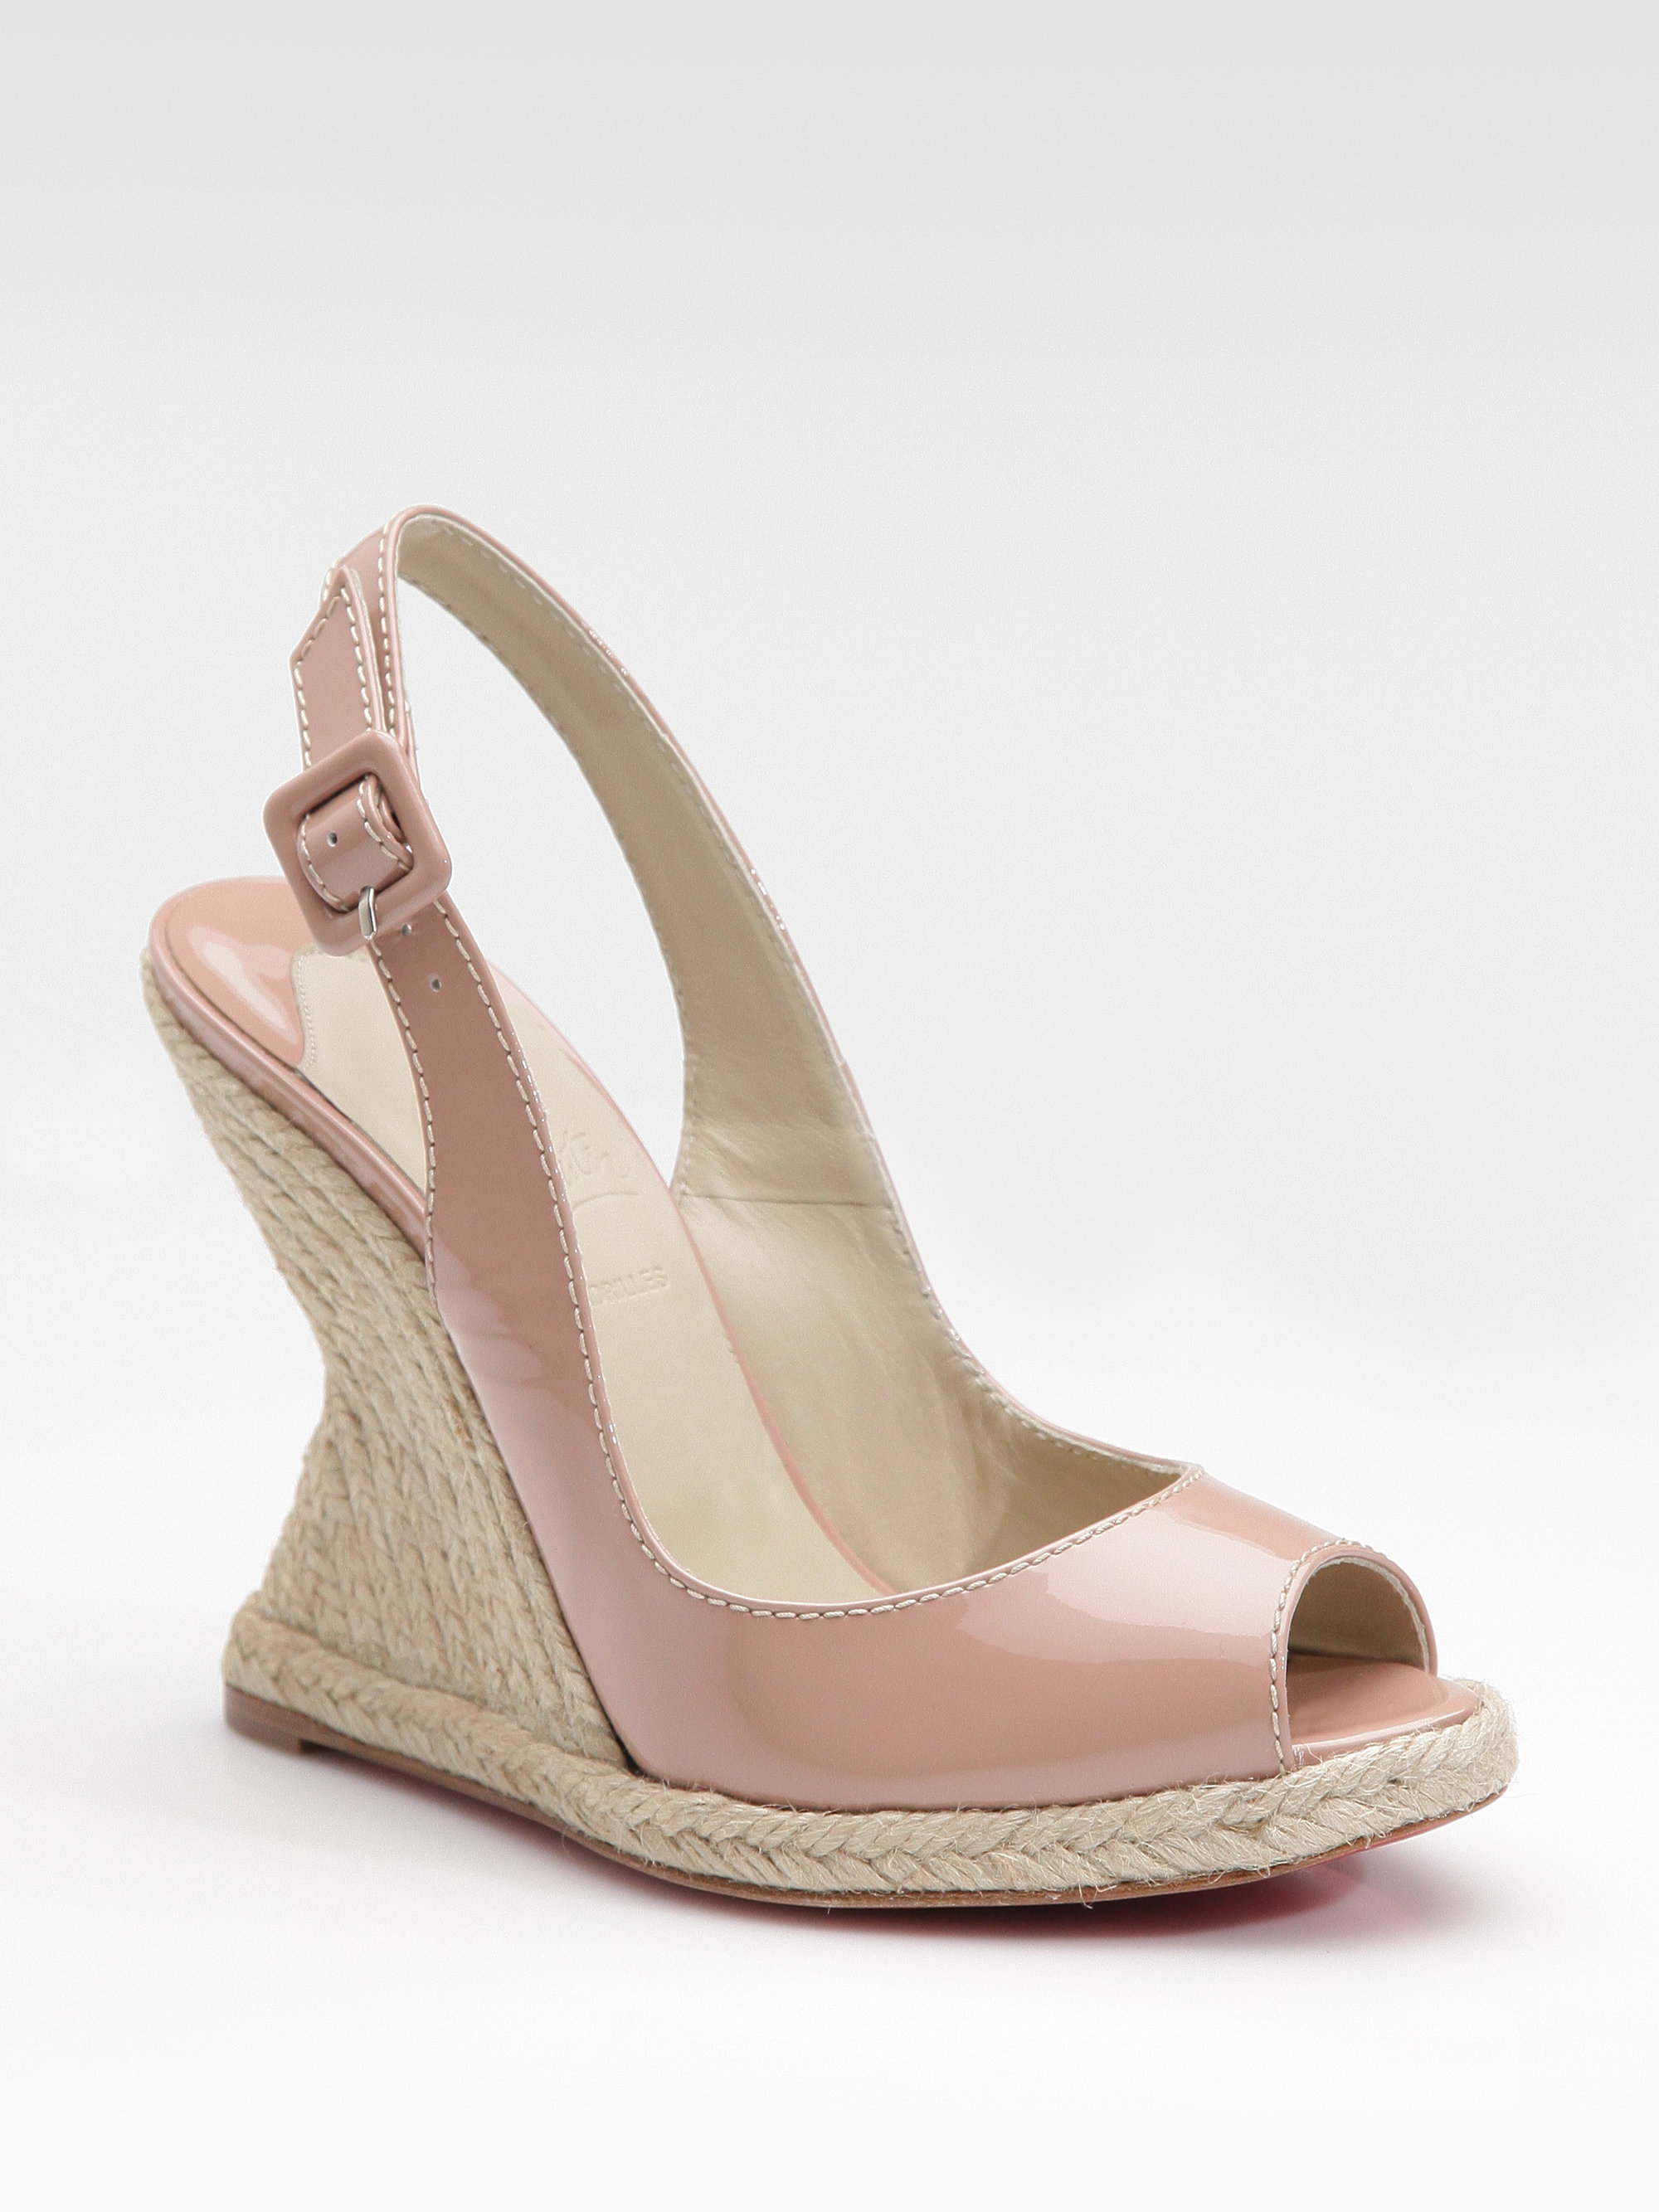 Christian Louboutin You Love Patent Leather Espadrille